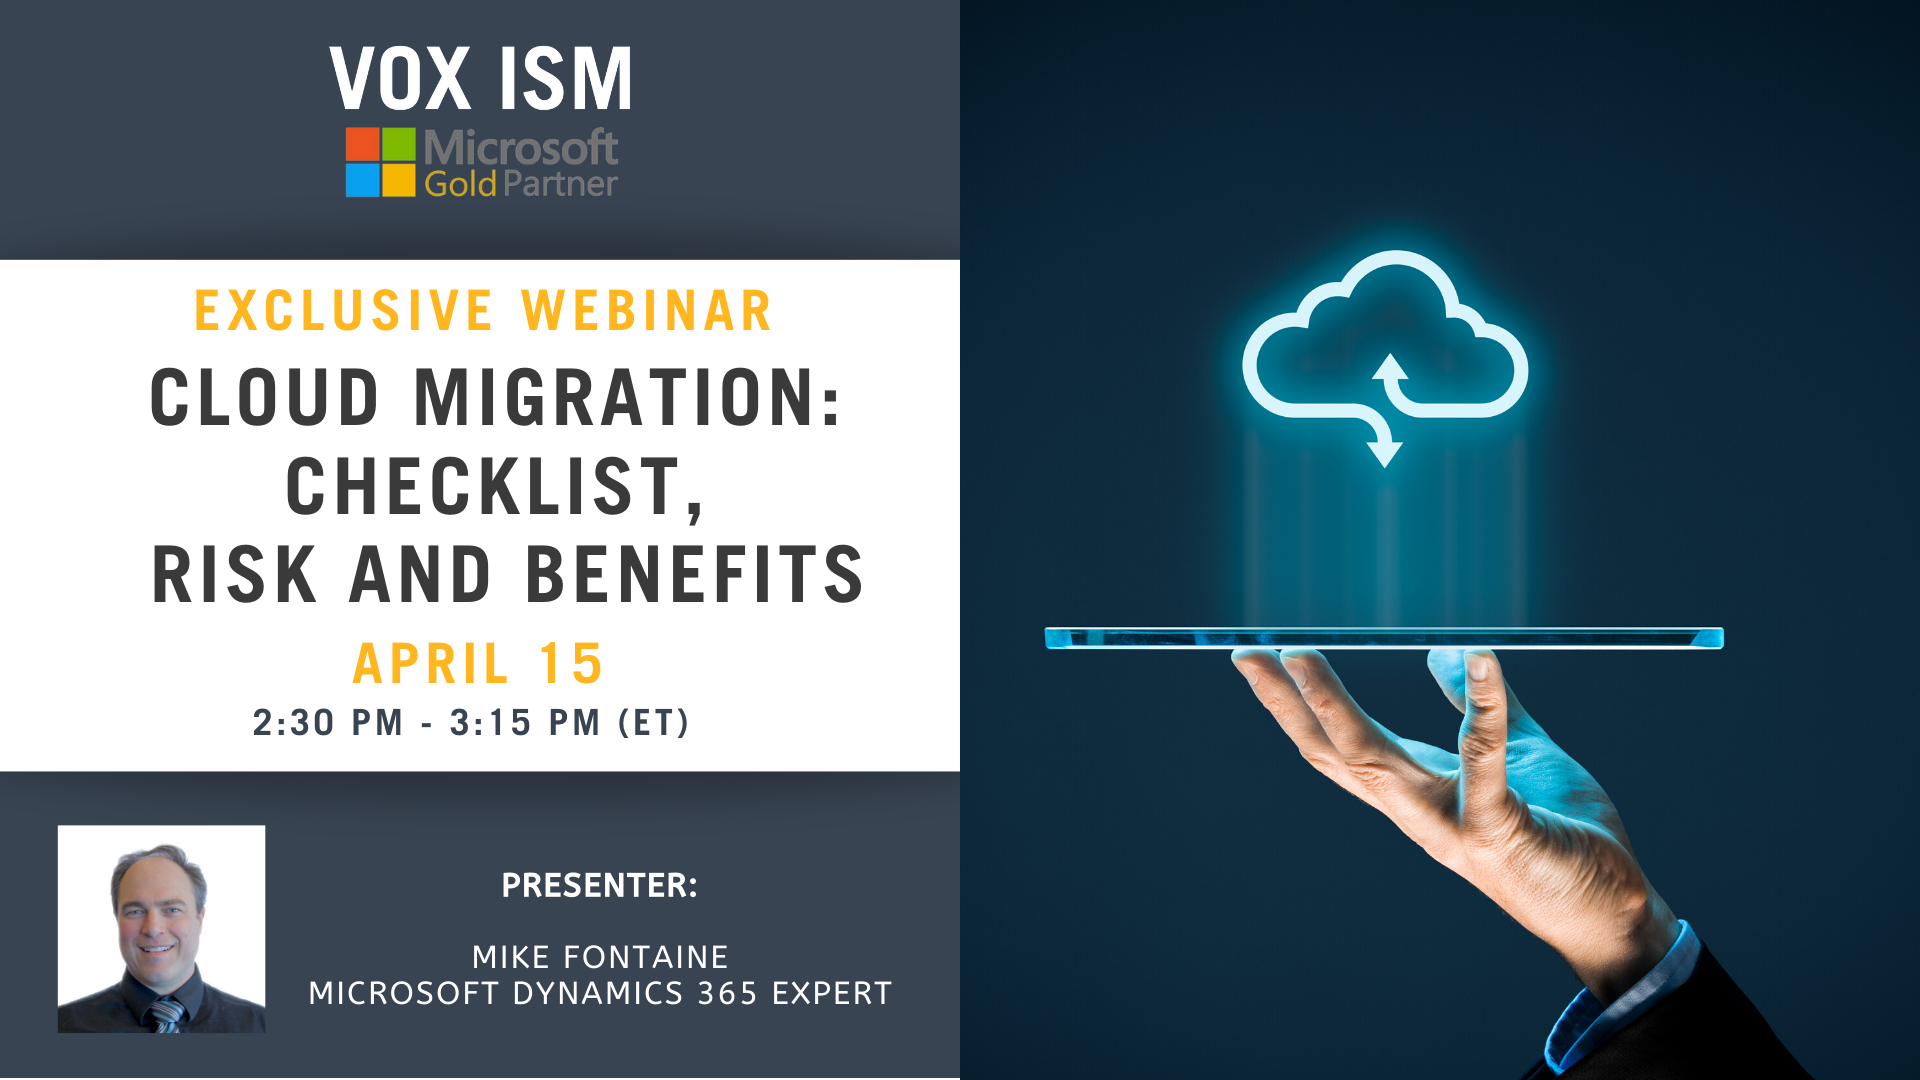 Cloud Migration Checklist, Risk and Benefits_VOX ISM